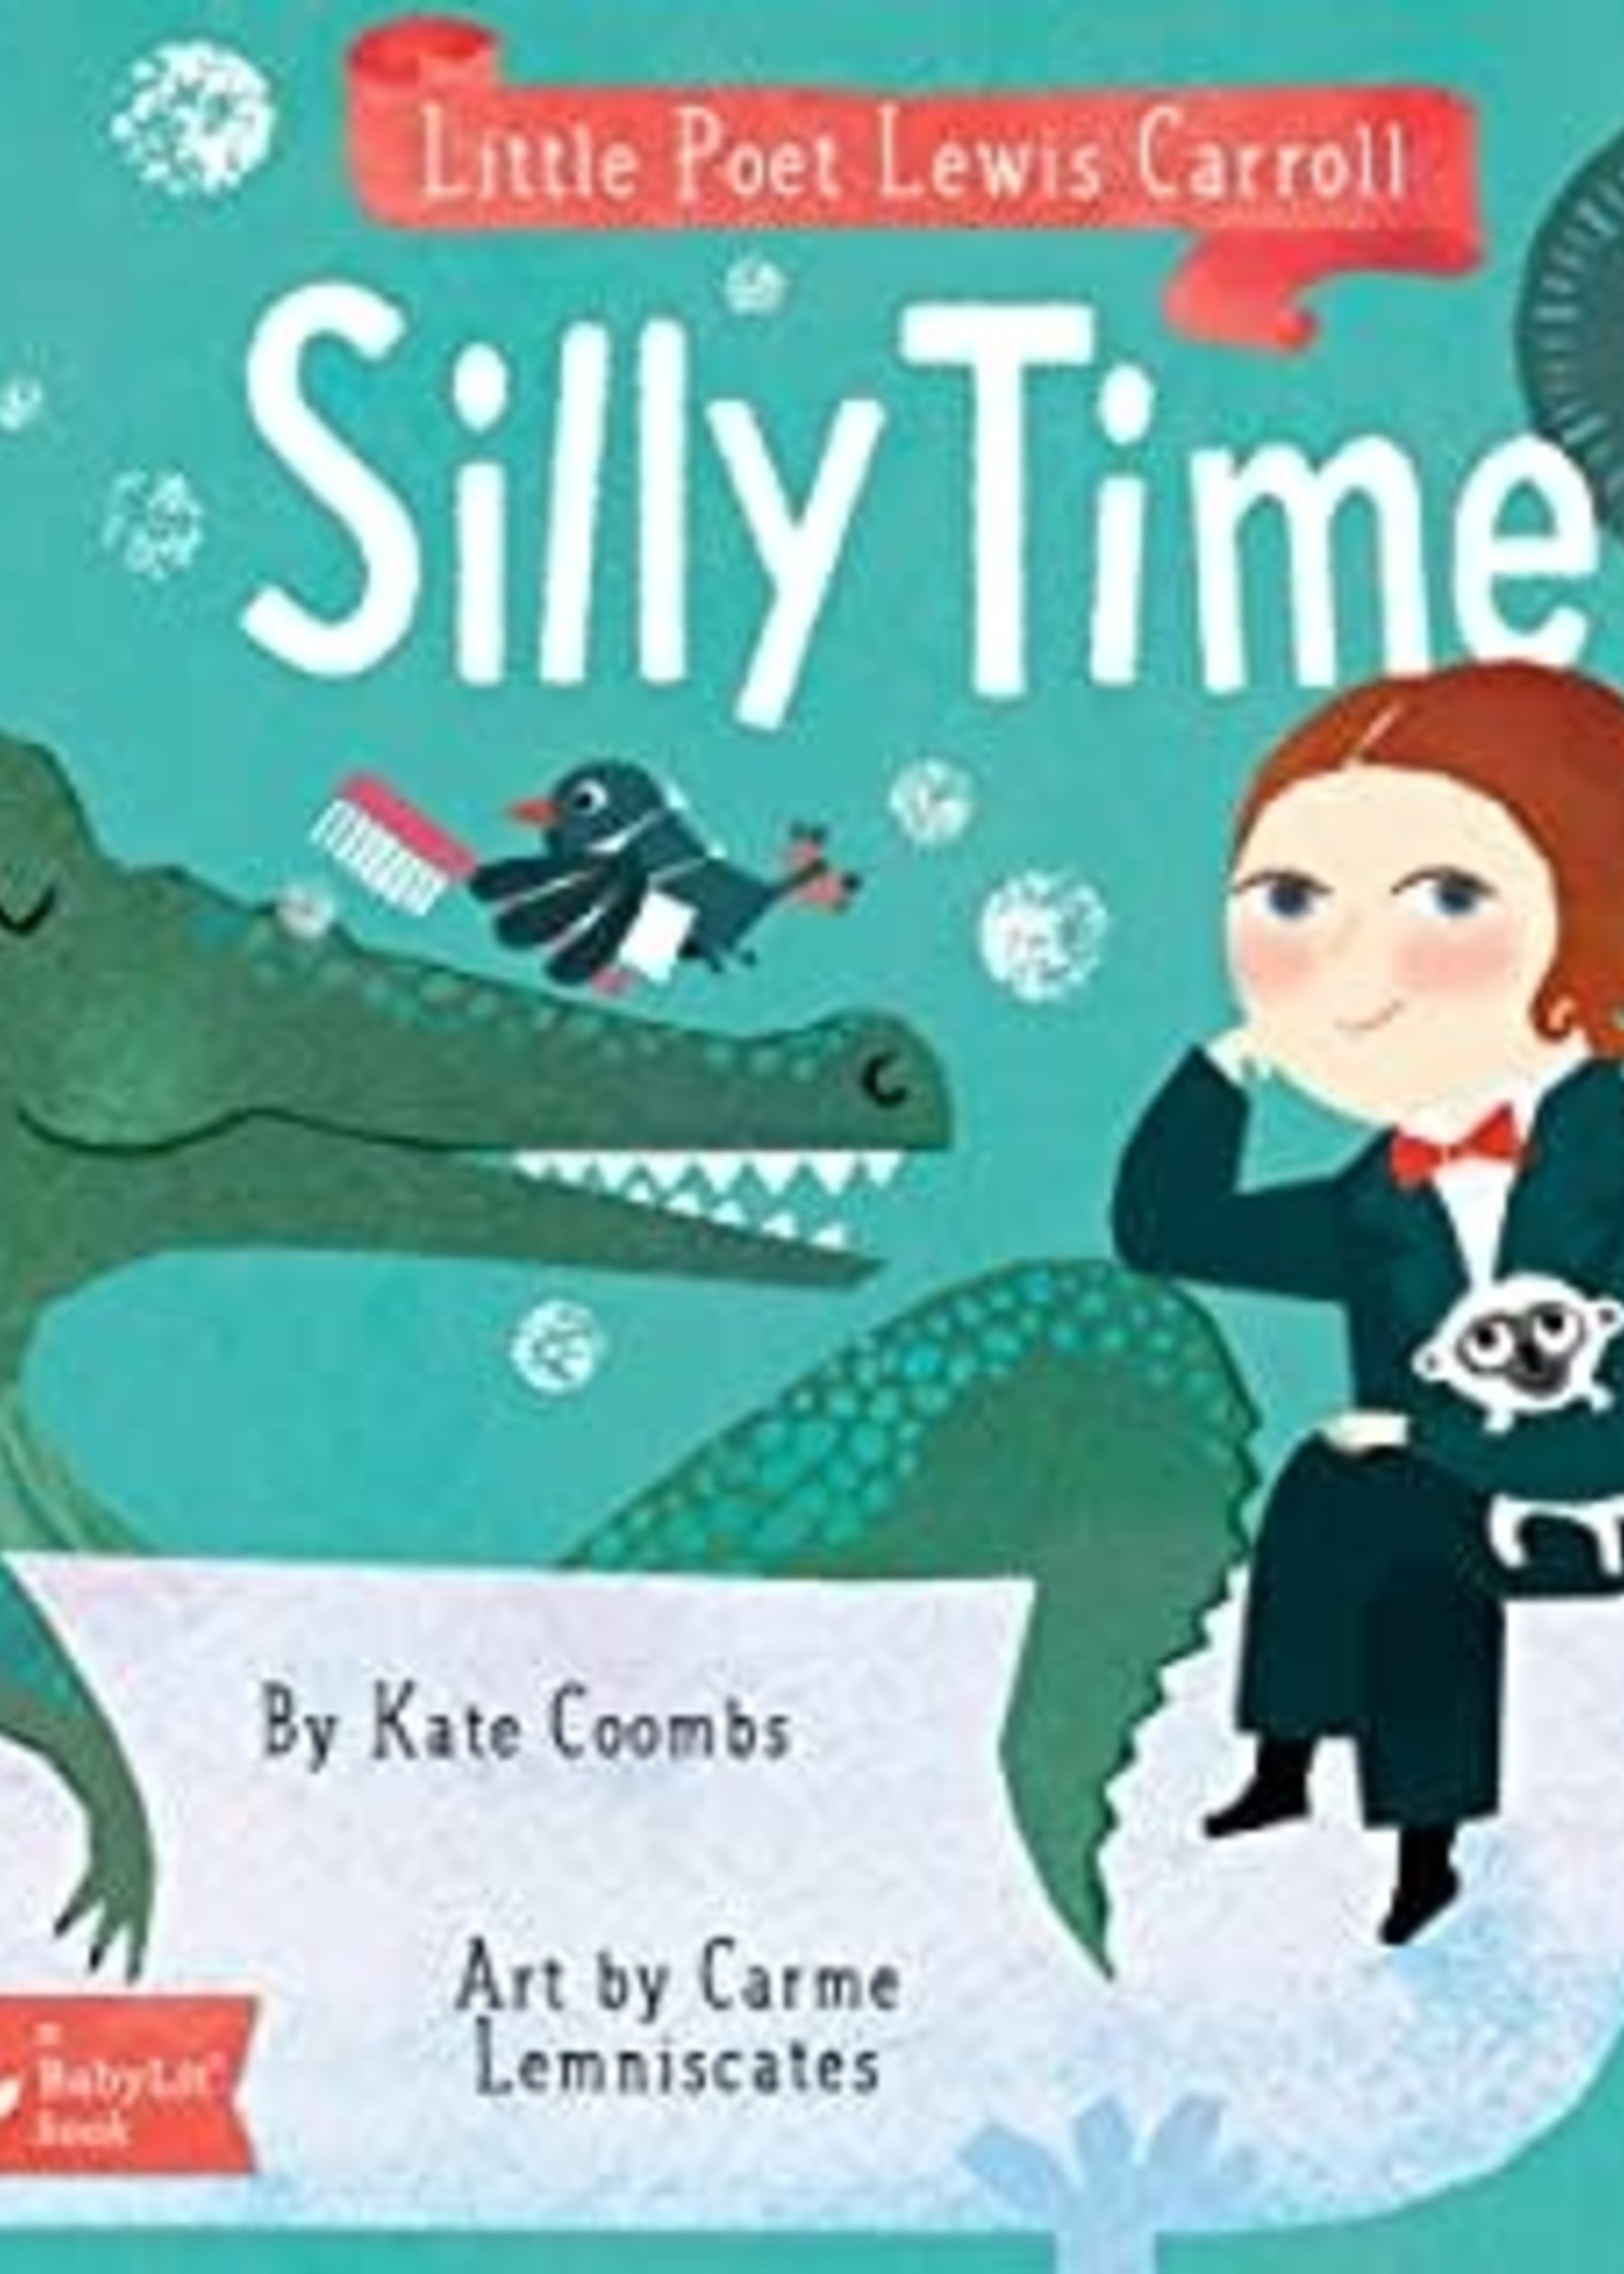 Little Poet Lewis Carroll: Silly Time by Kate Coombs,  Carme Lemniscates